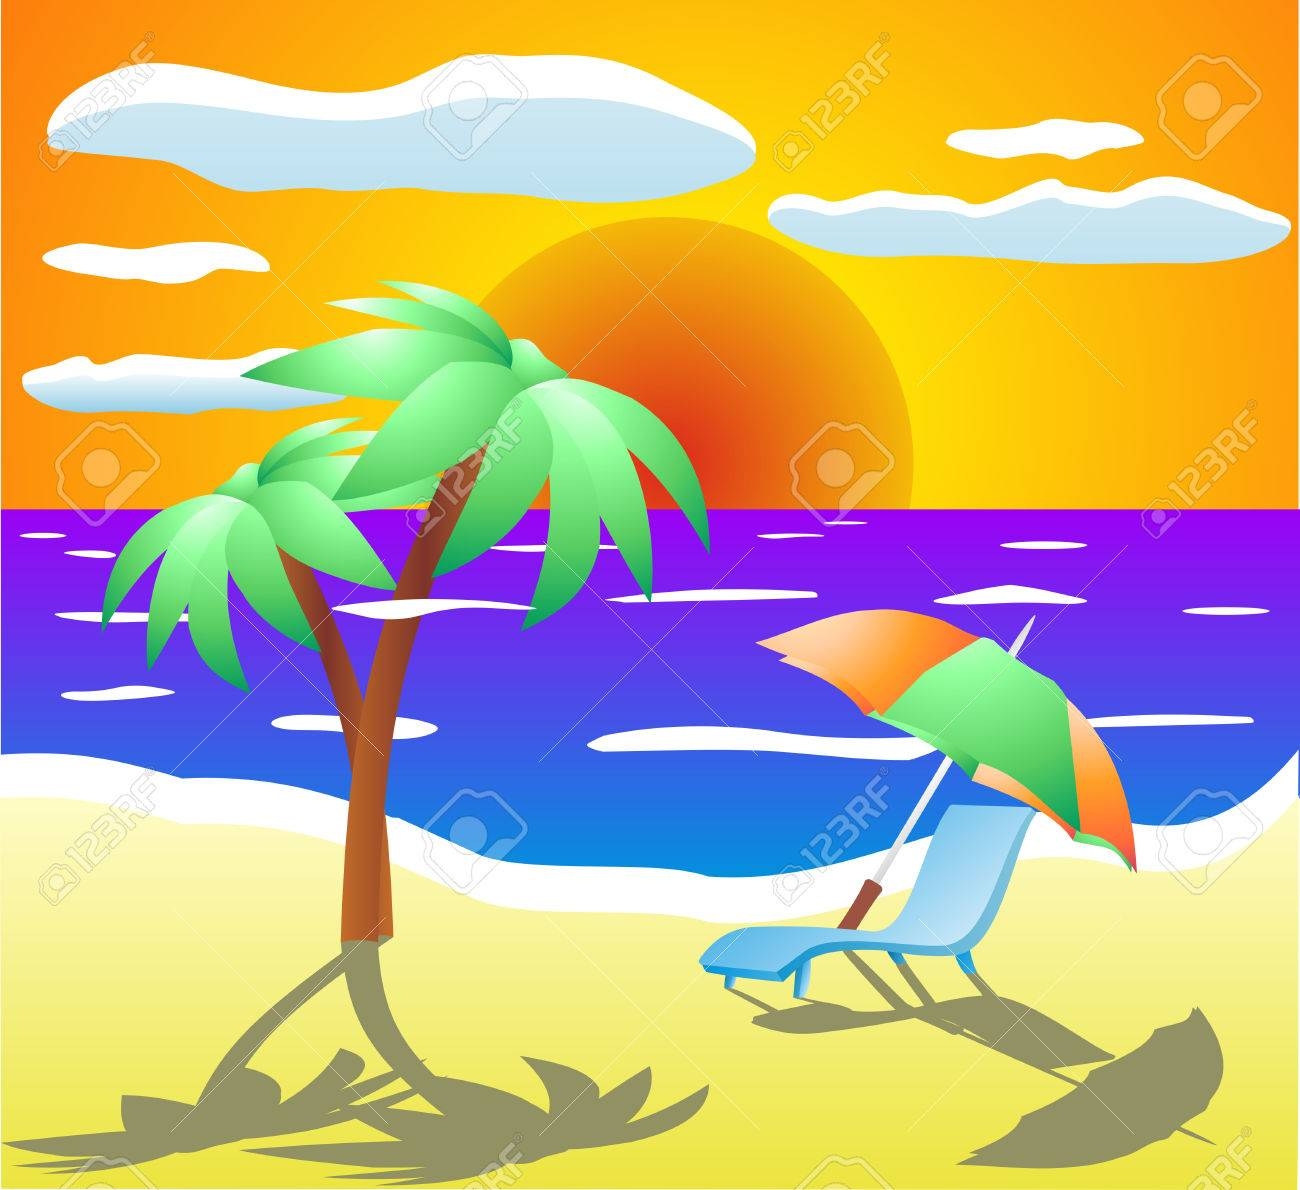 Beach Stock Vector - 6122631